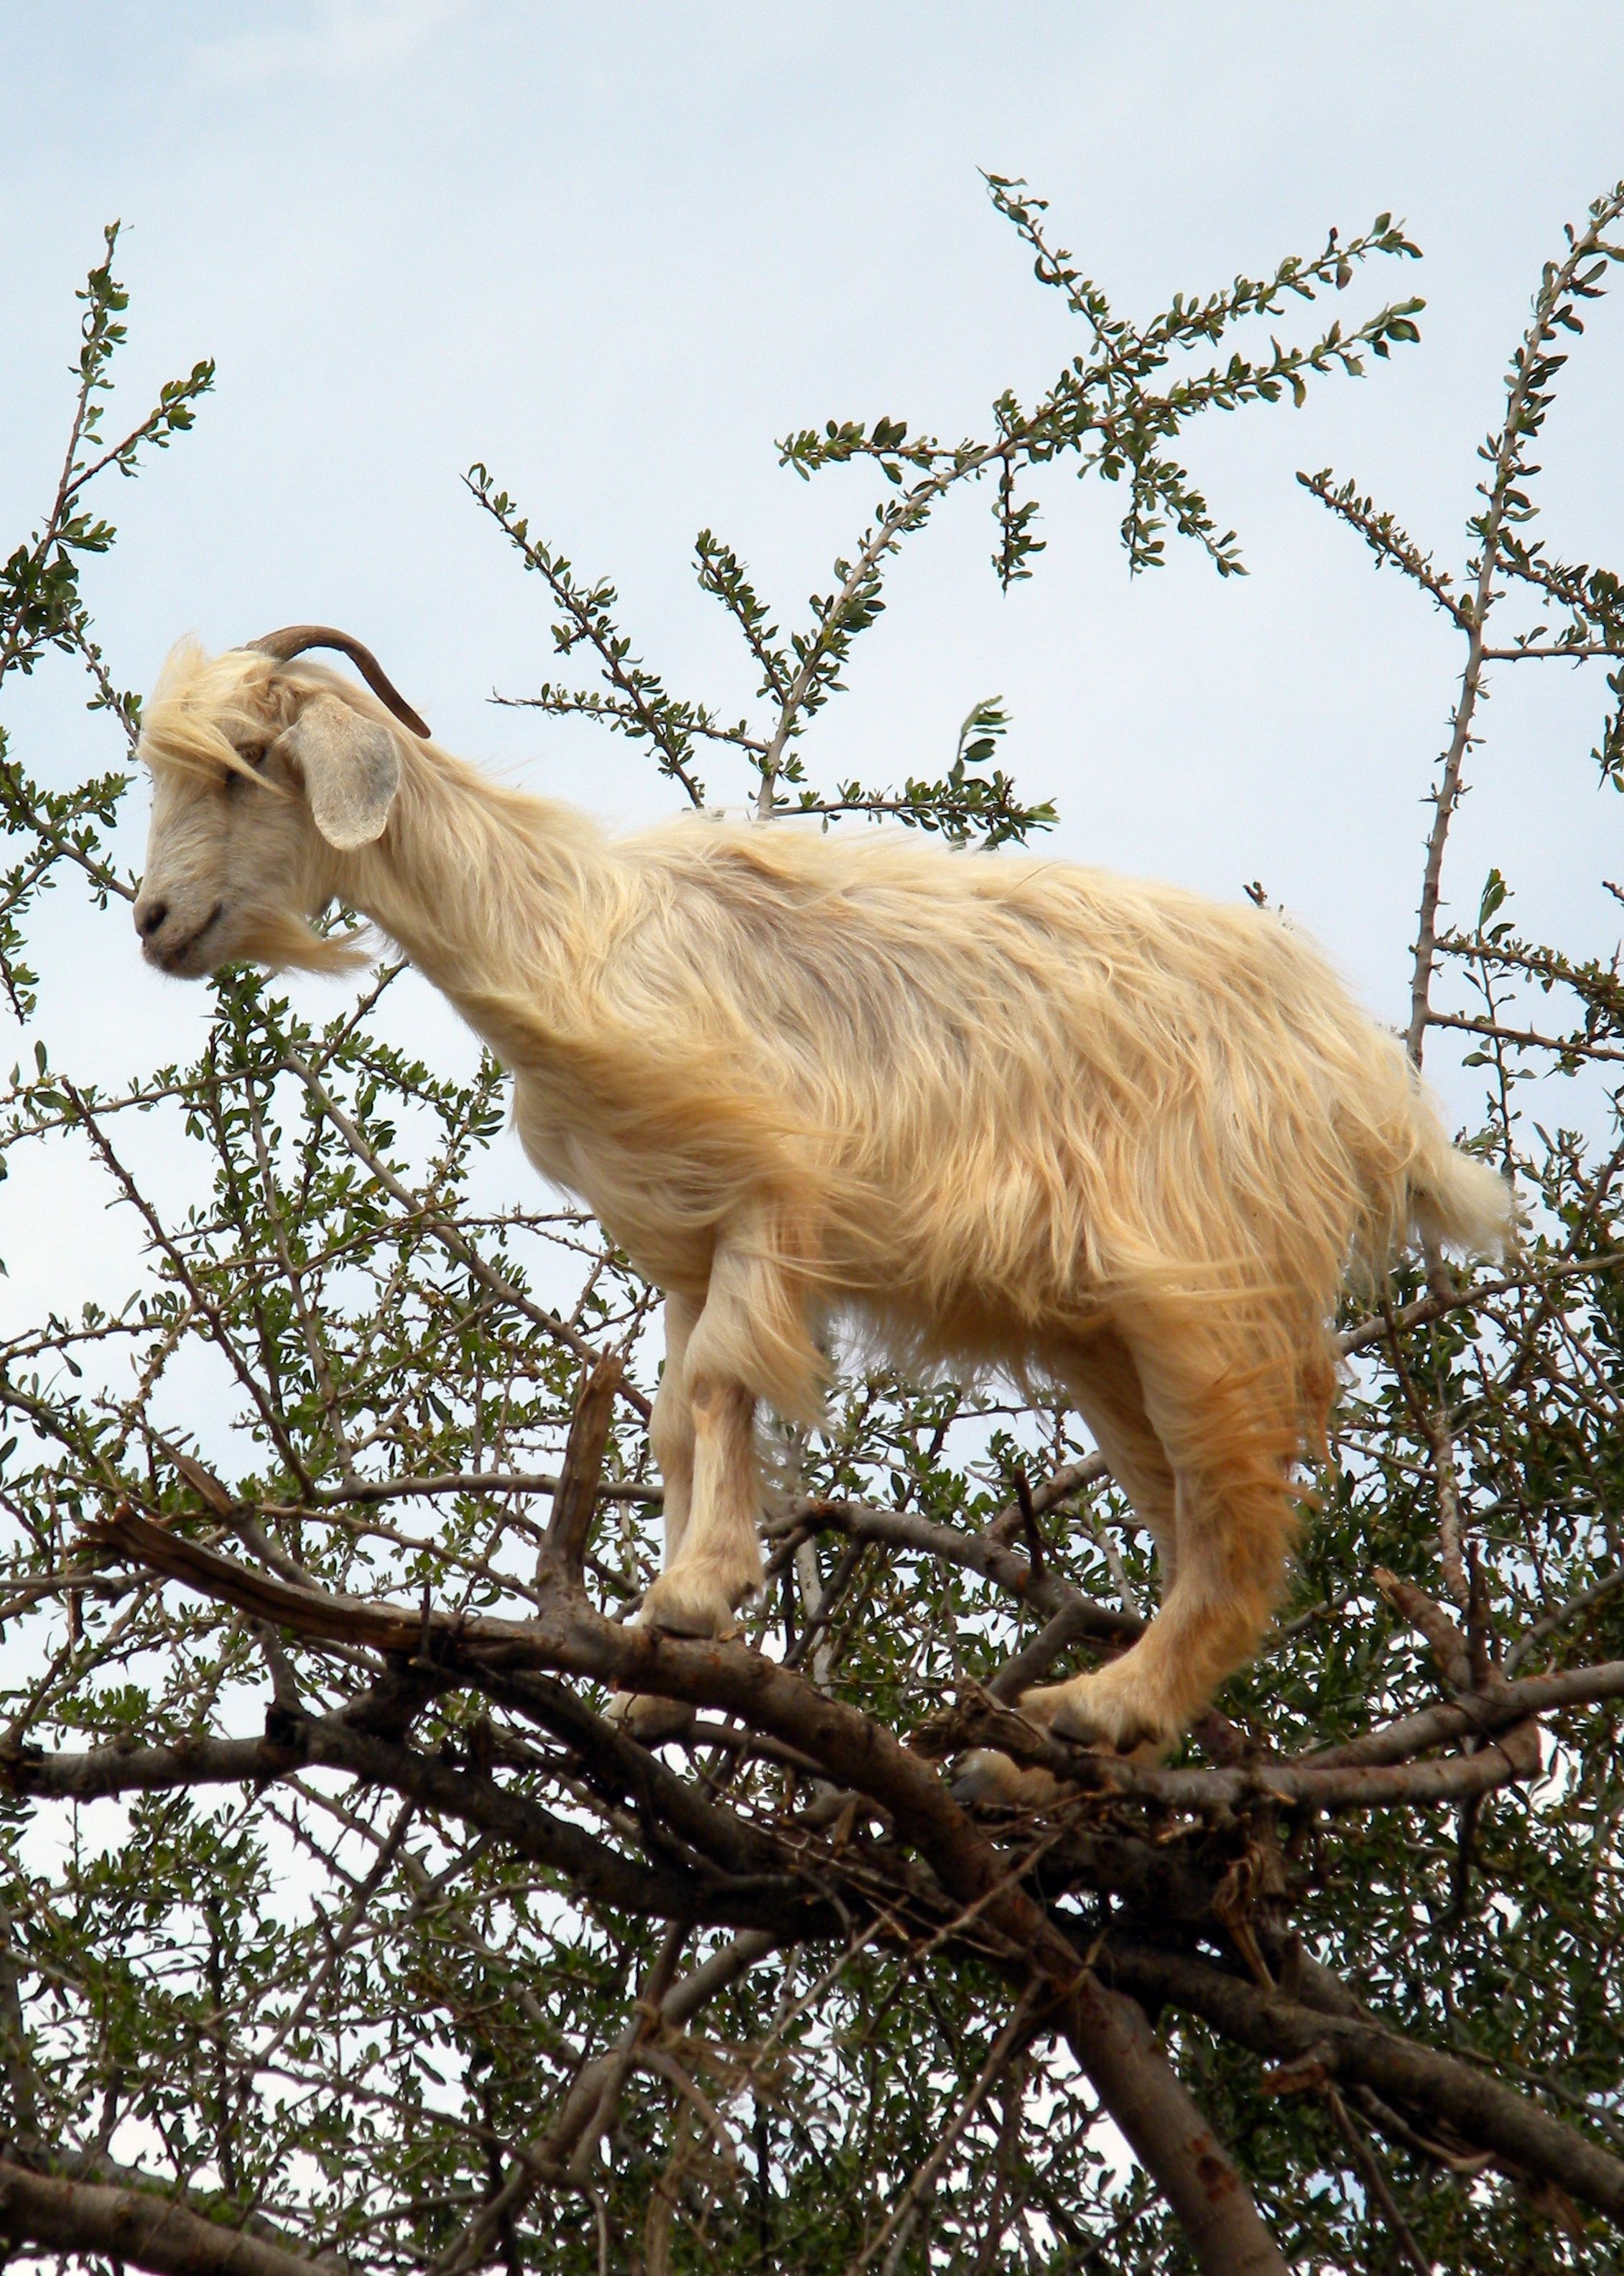 Goat in a tree by somepinkflowers how in the did